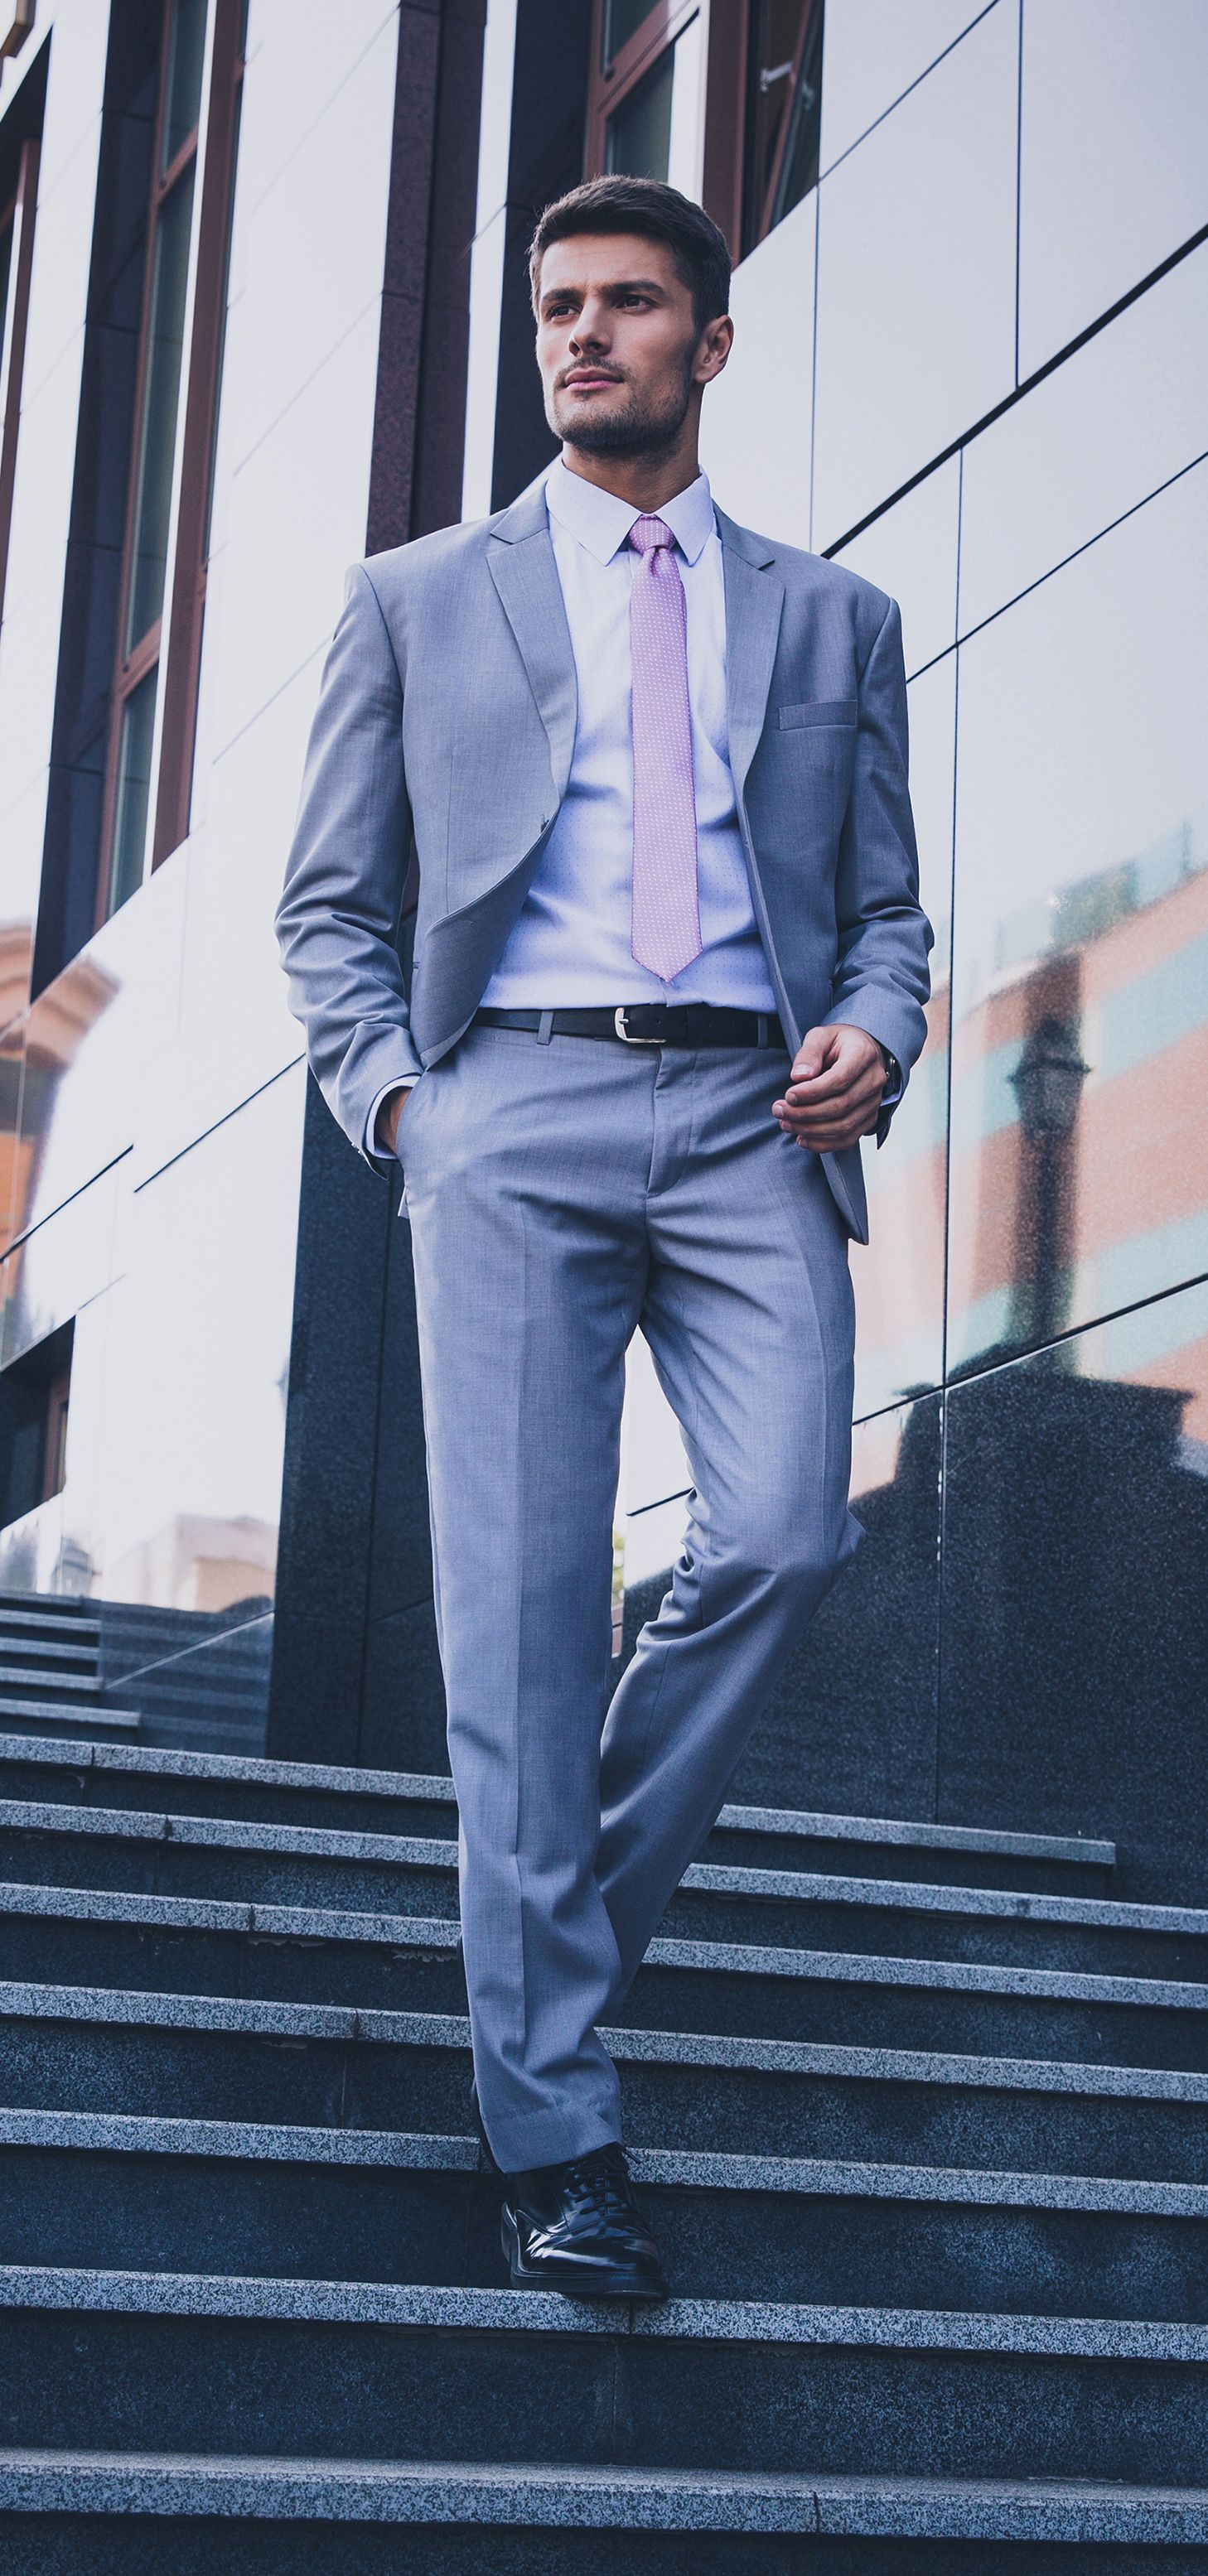 Tailored to fit your lifestyle